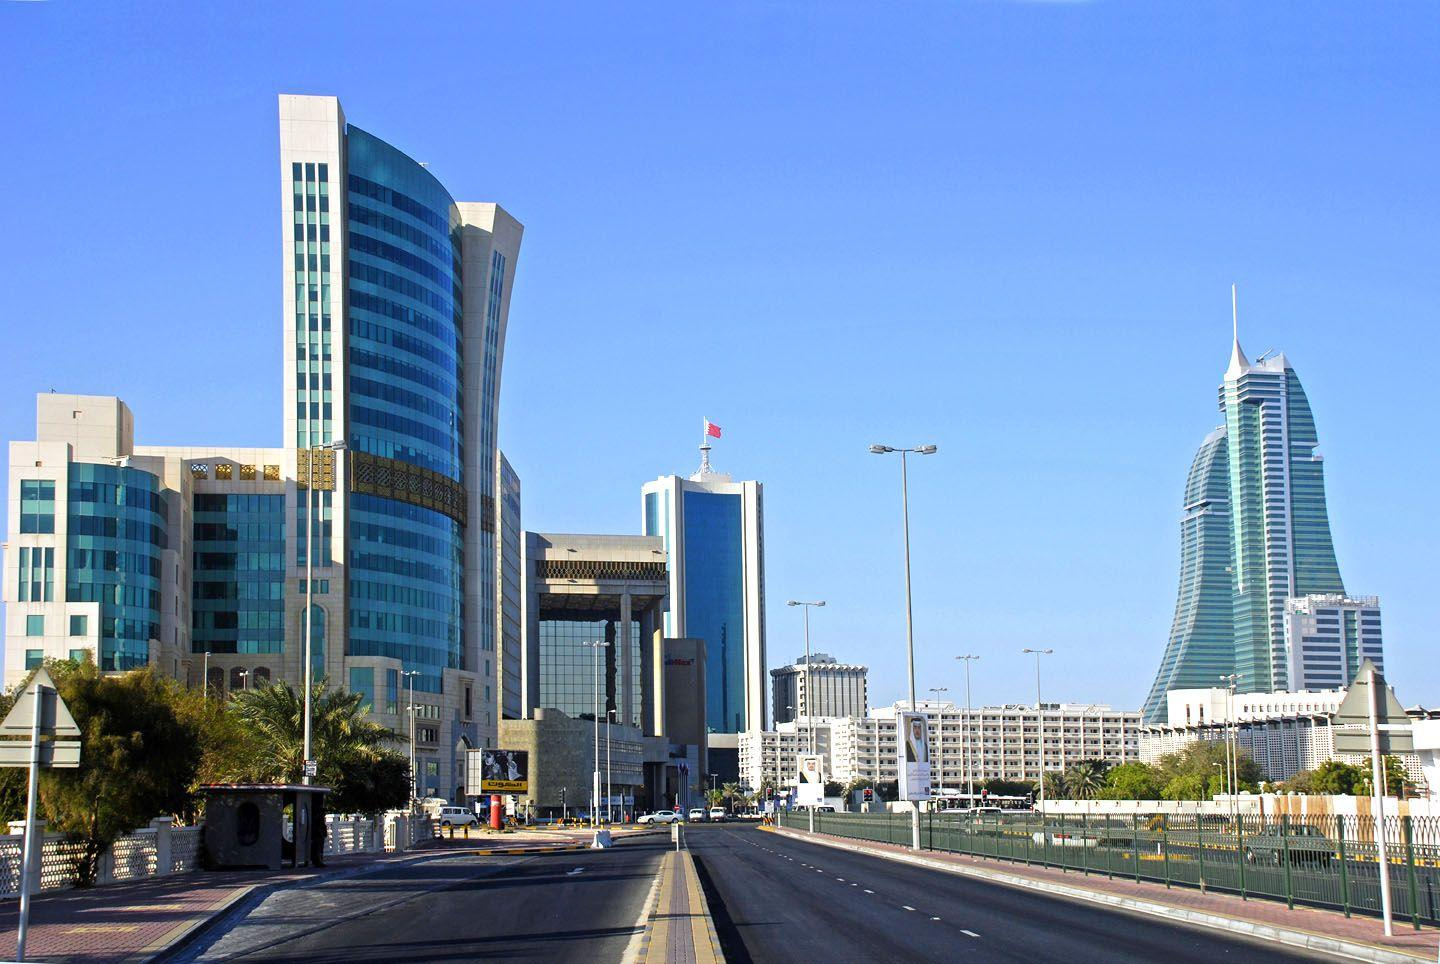 Wallpapers Landscape World Trade Center Bahrain City 1920×1080 ...